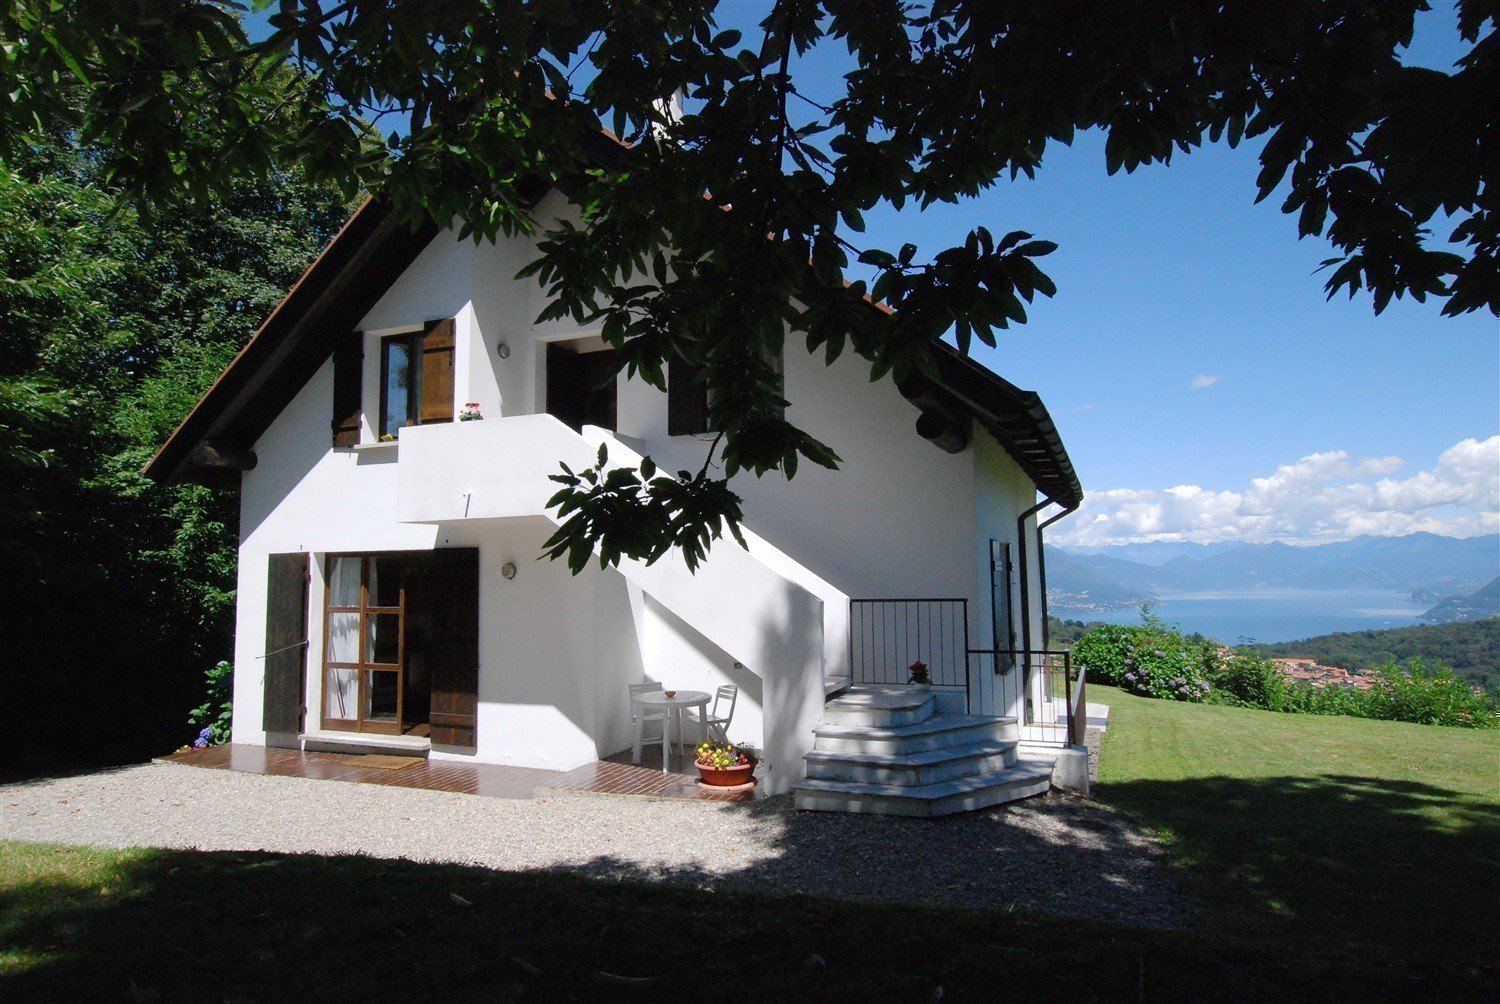 house for sale in Gignese with a lake view- external real estate